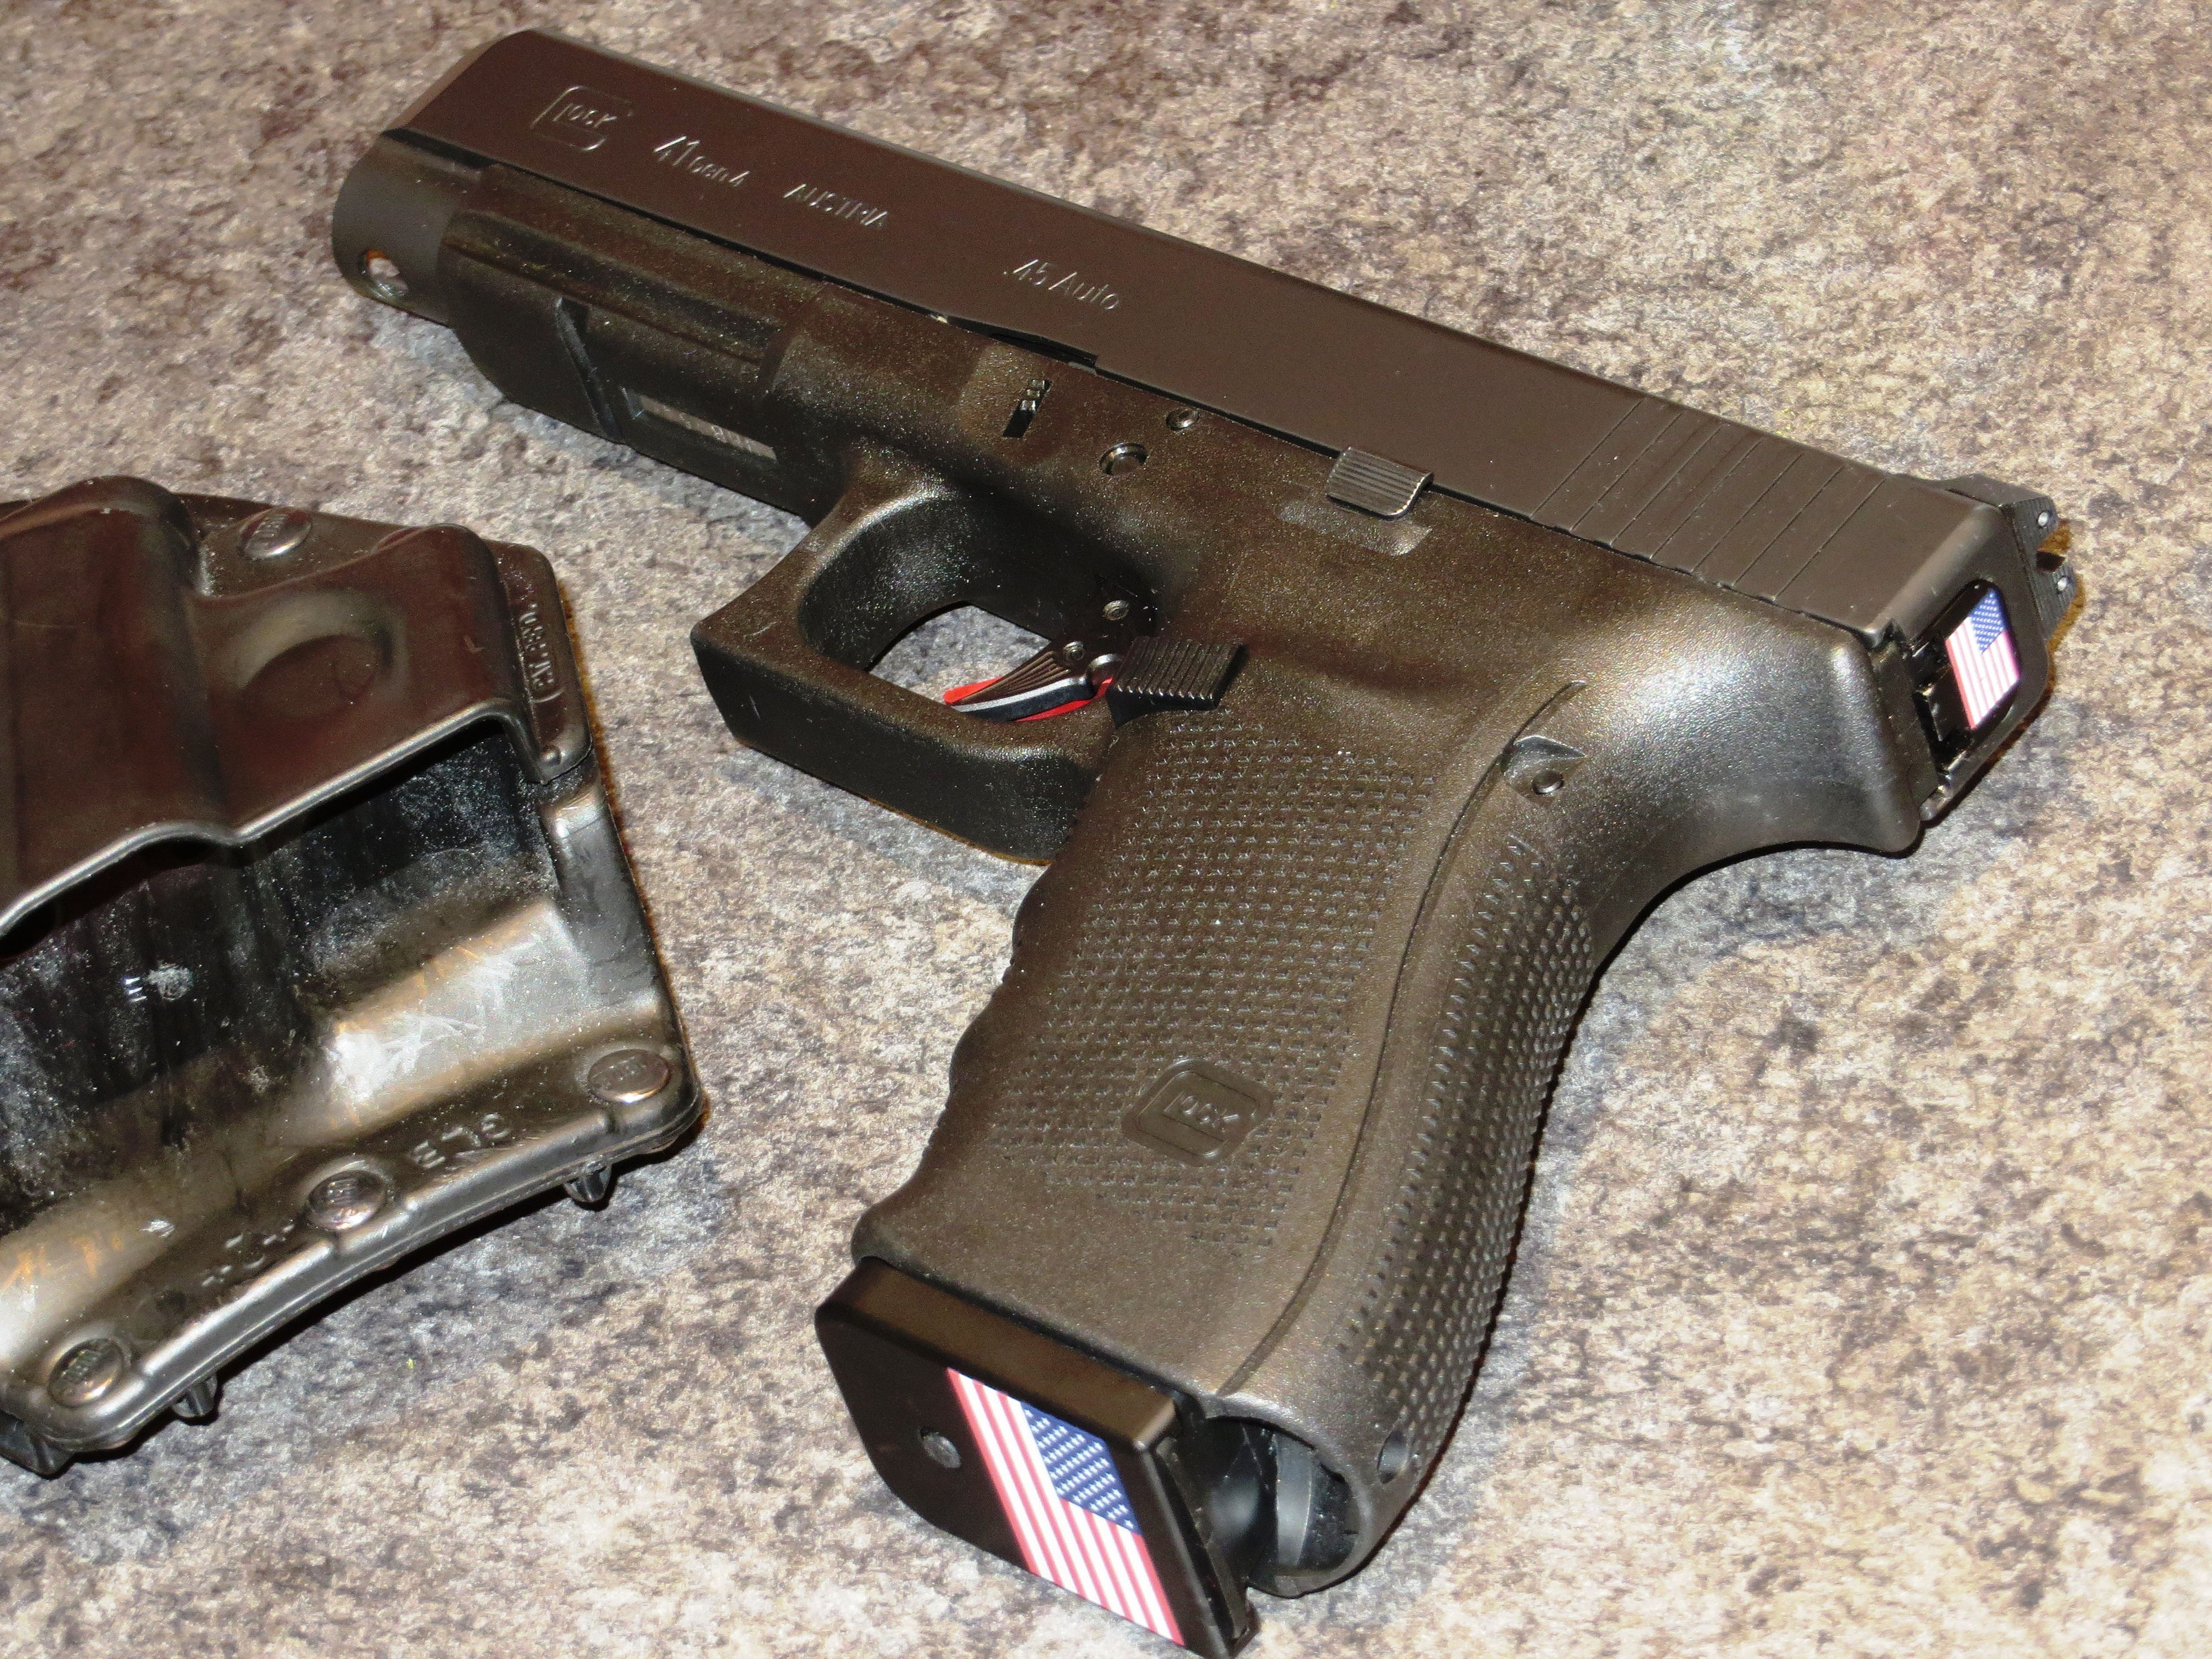 Glock G41 Gen4, ZEV Tech trigger, firing pin, and firing pin